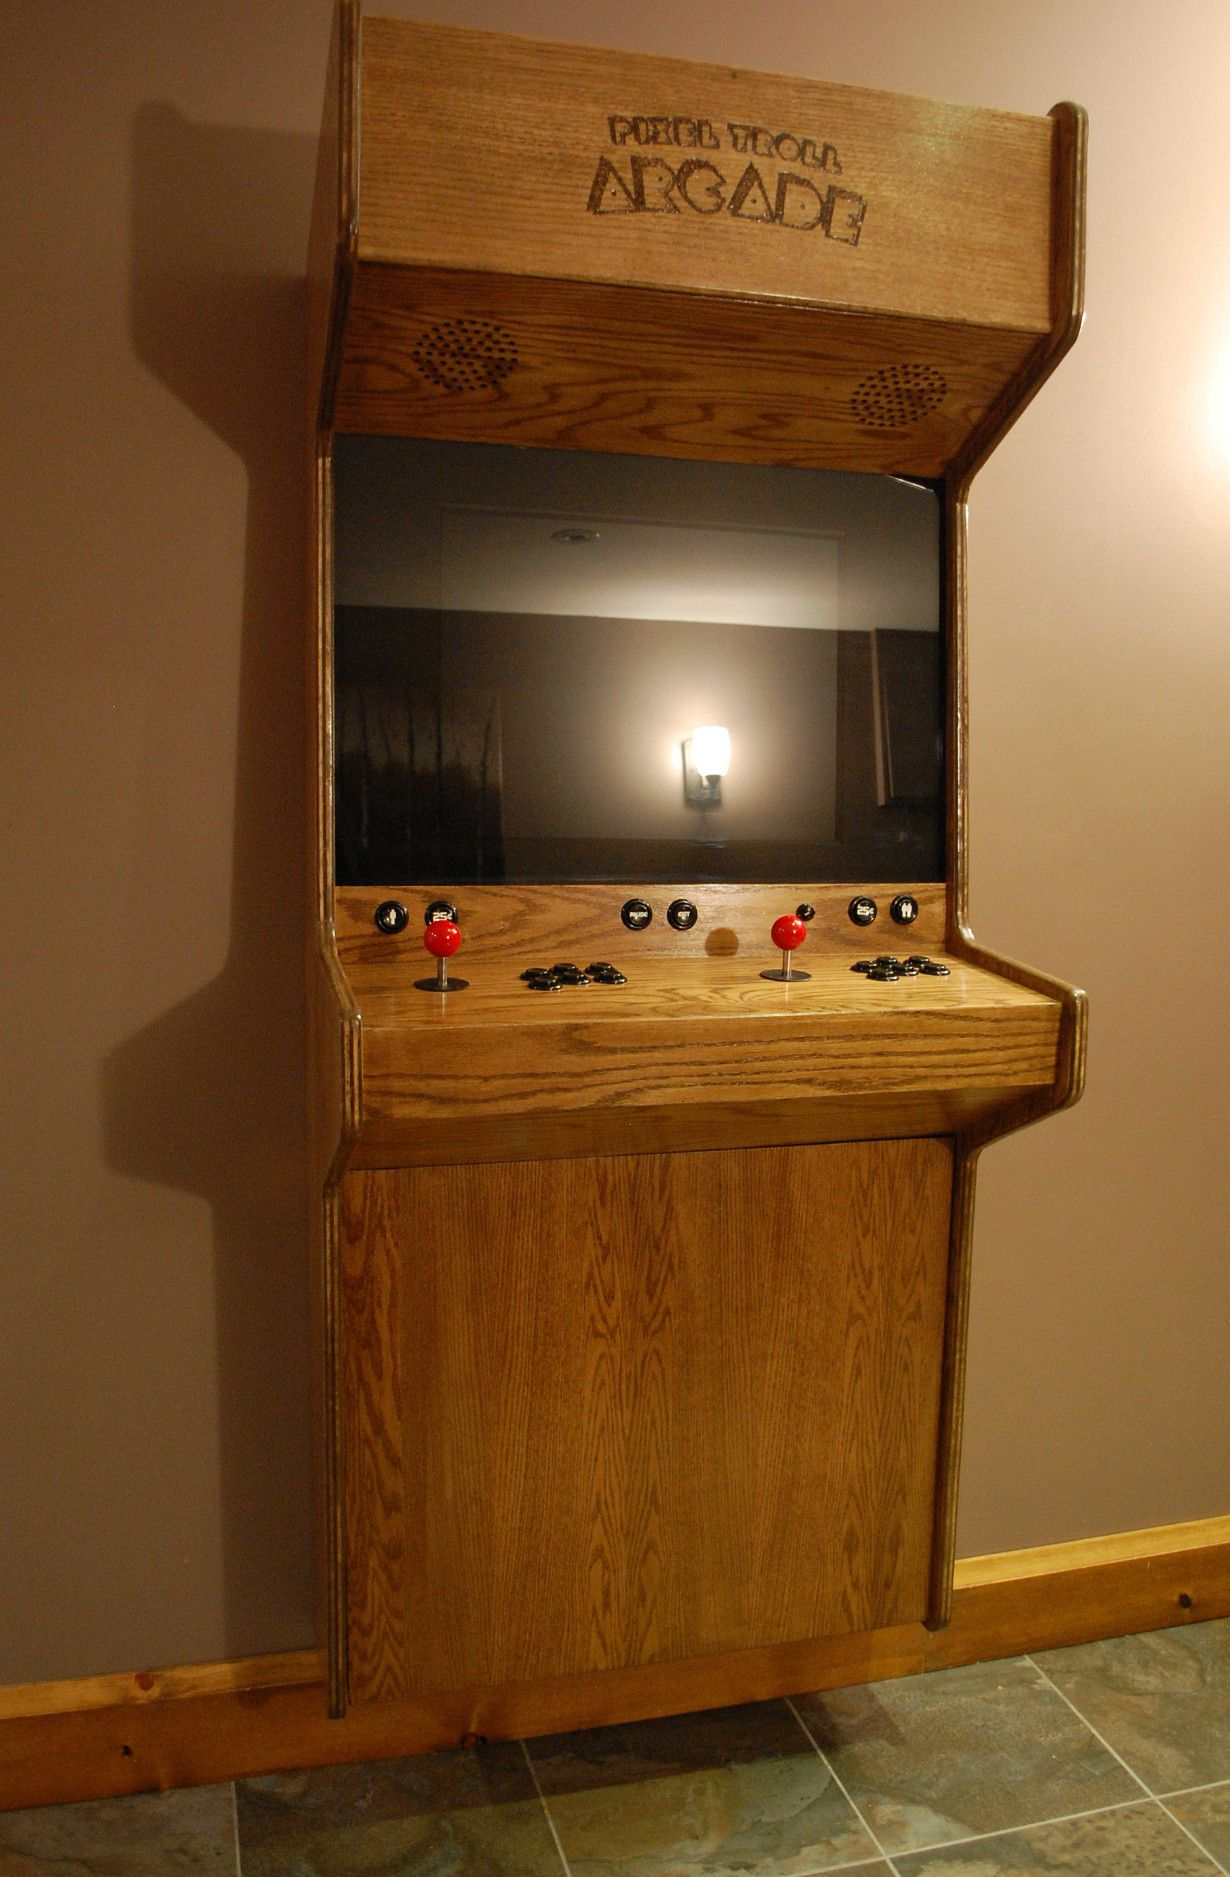 Classy Computer Tables To Go With Living Room Decor: Classy White Oak Veneer Arcade Cabinet